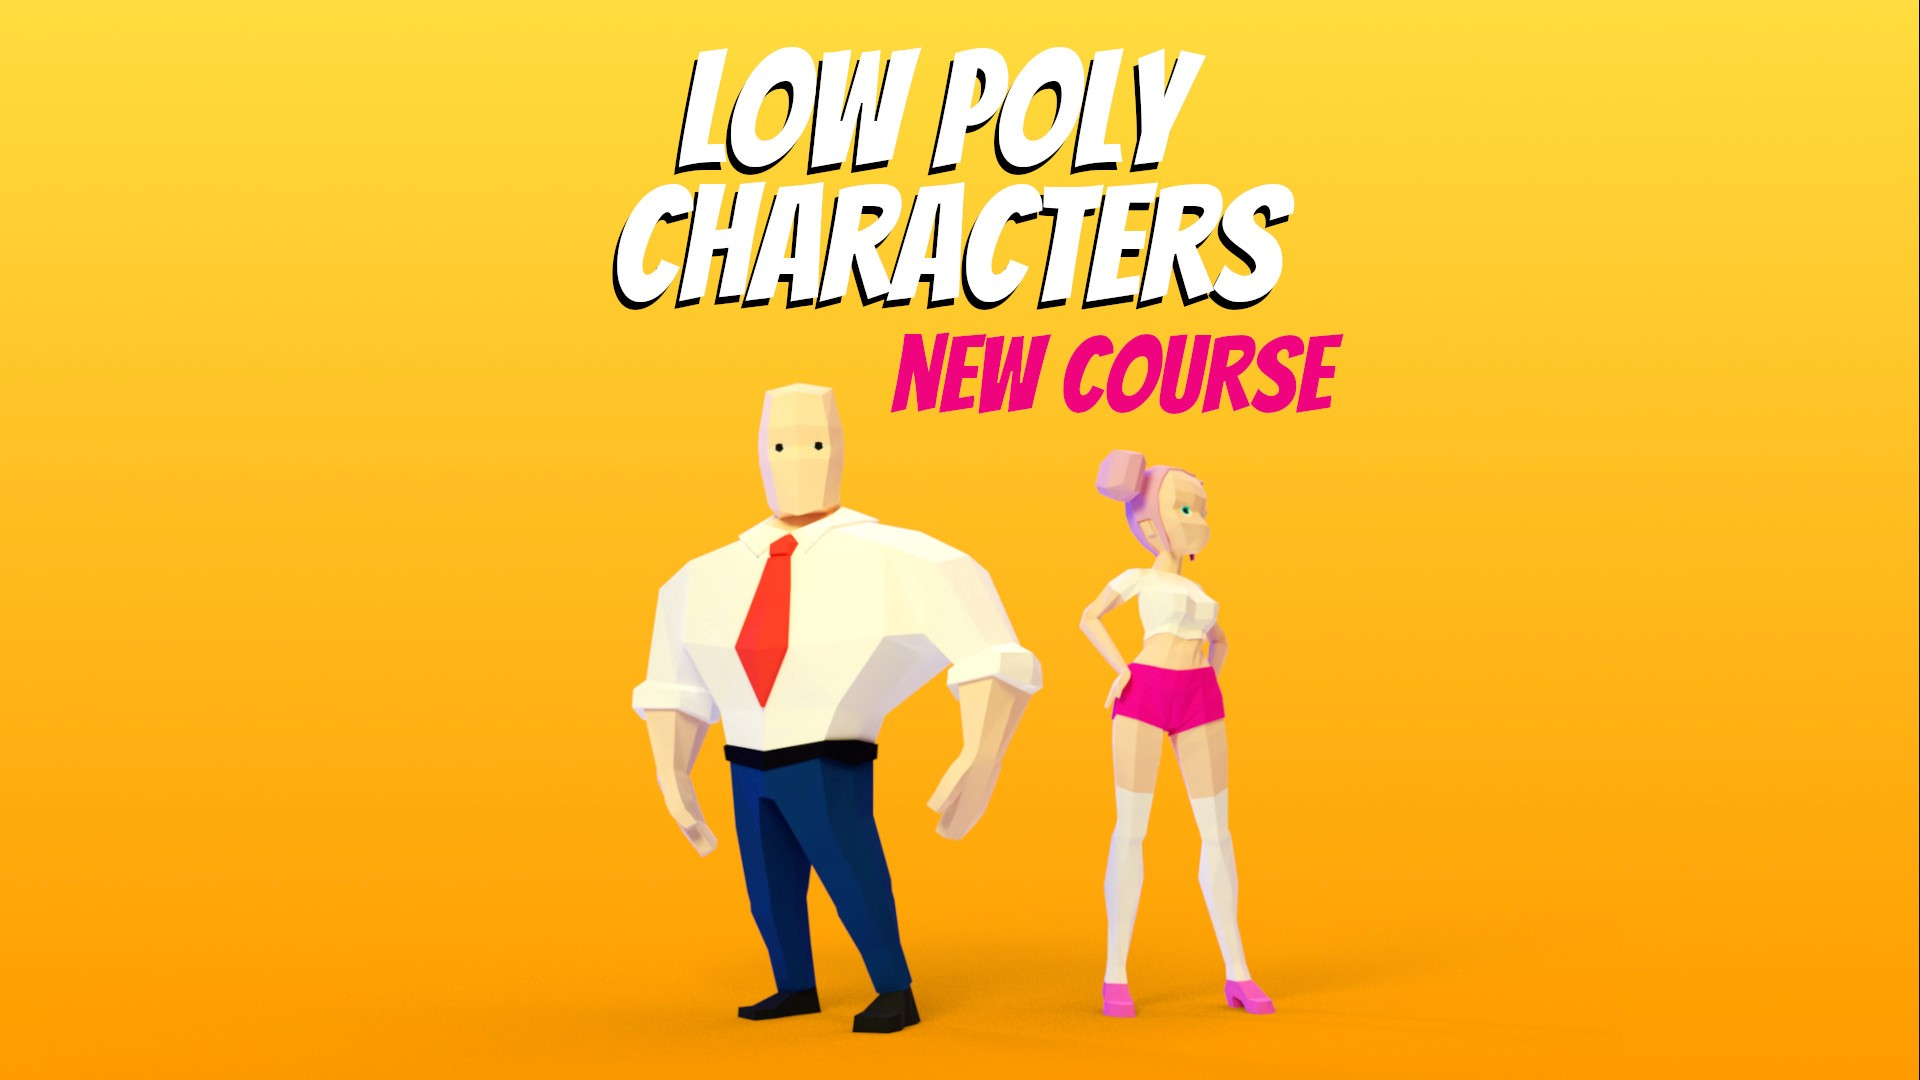 A course thumbnail showing a male and female 3d characters.